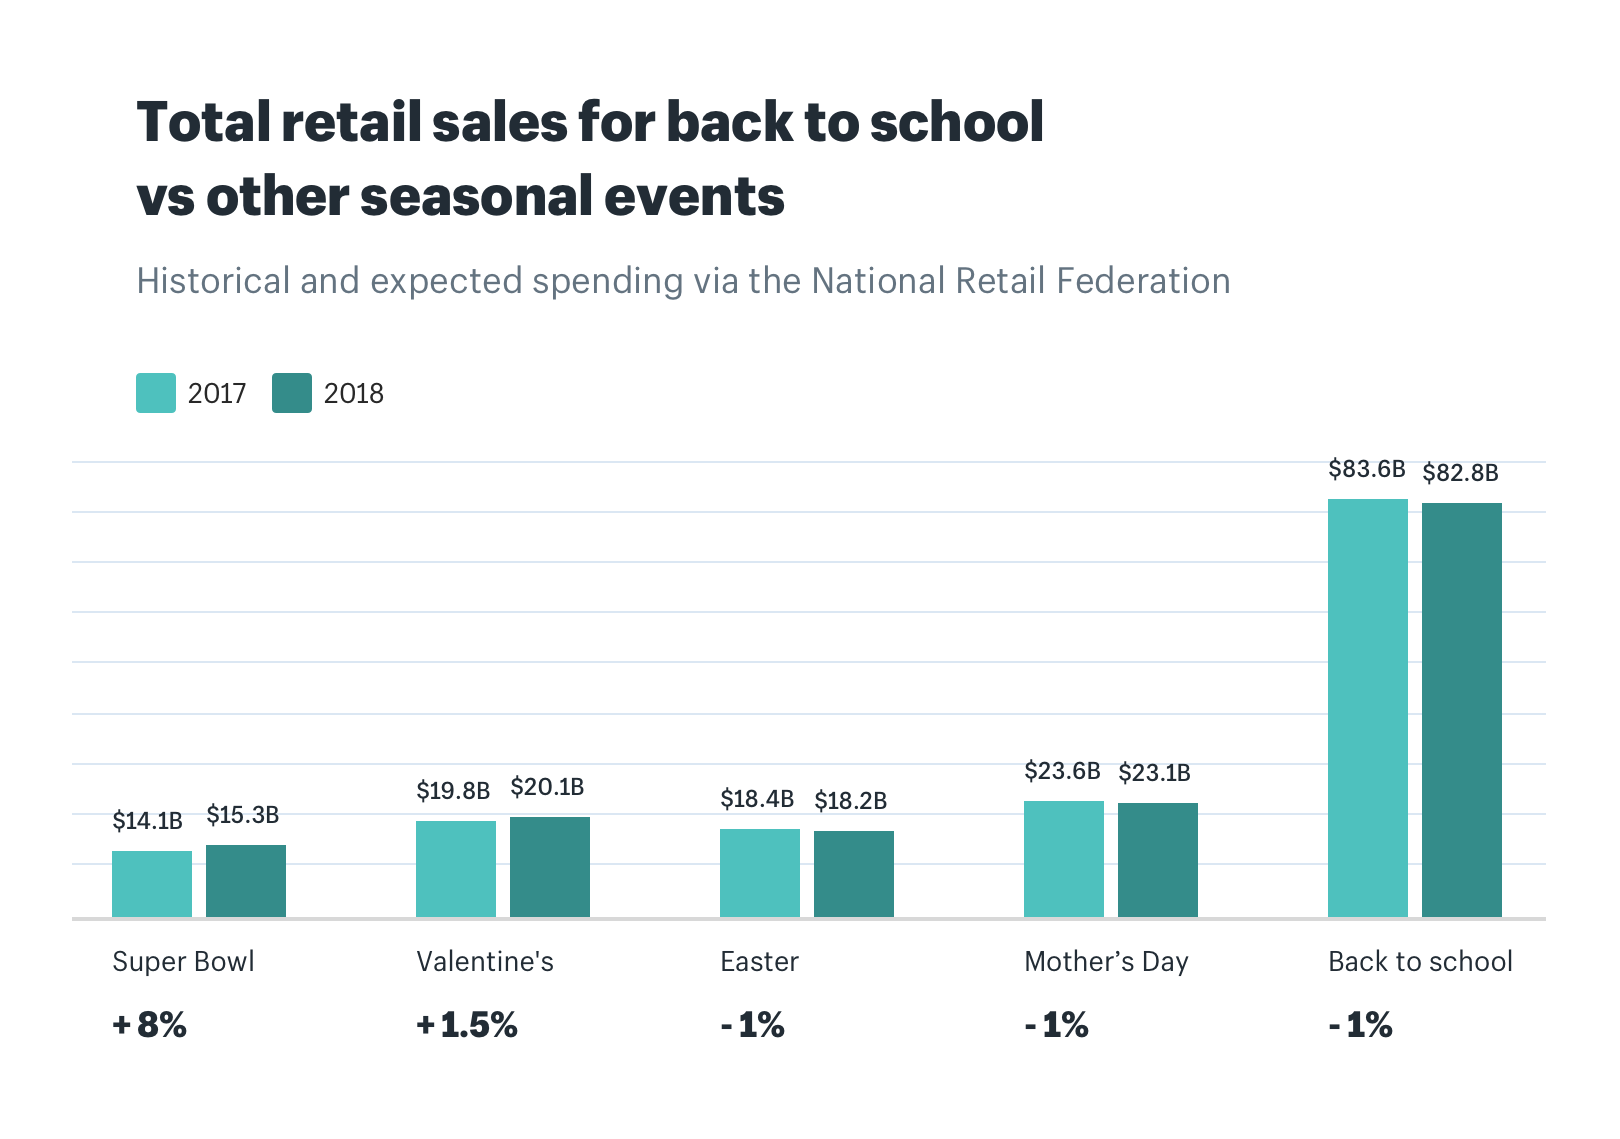 Total retail sales for back to school vs other seasonal events